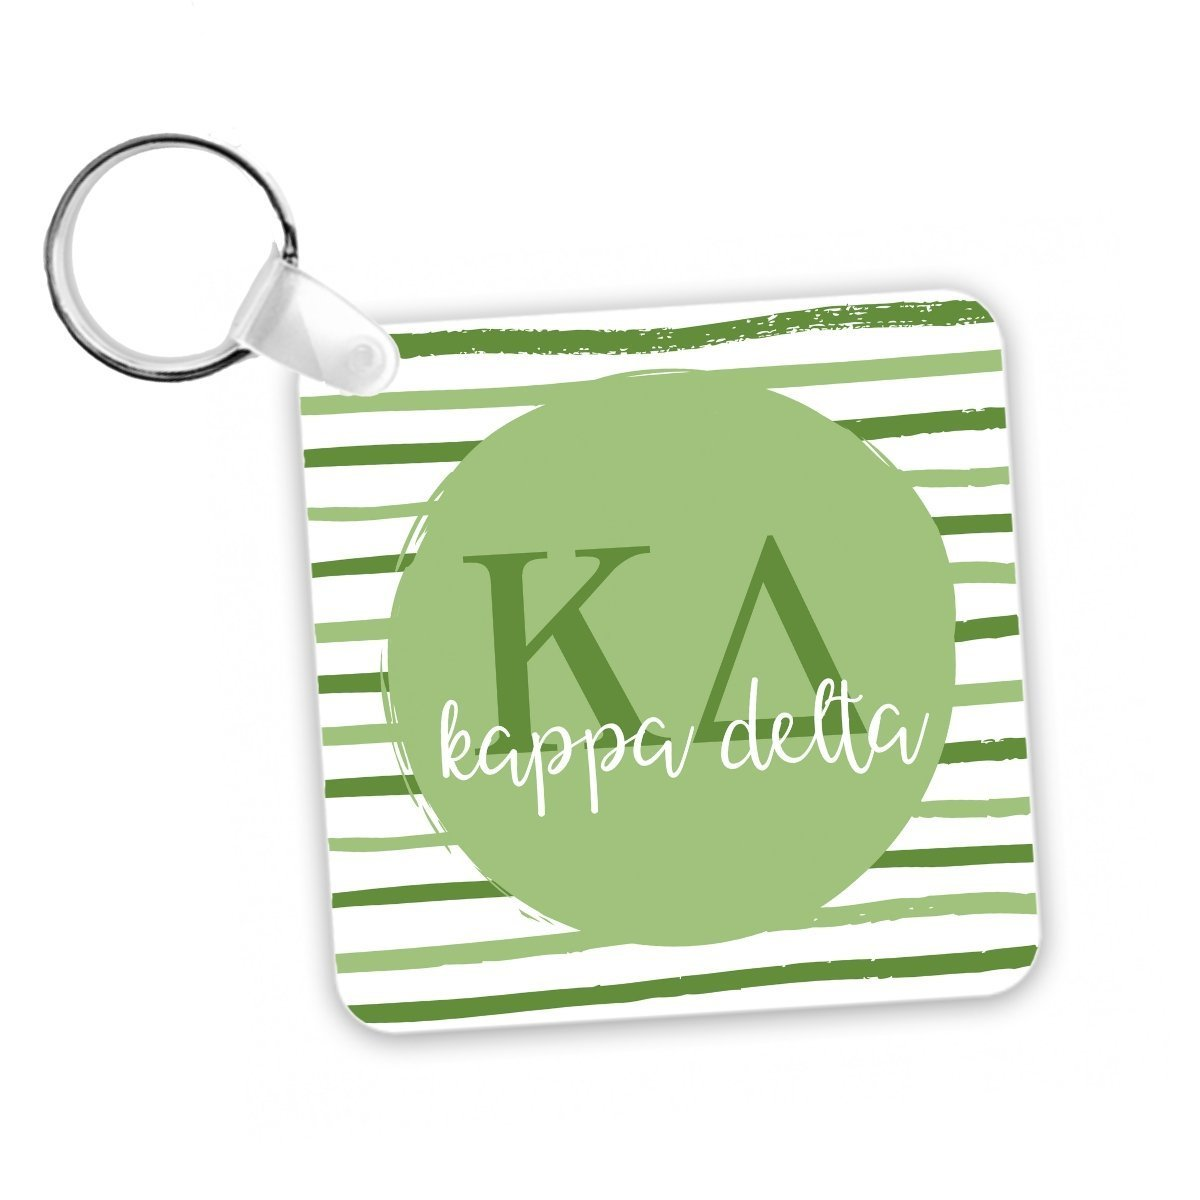 Kappa Delta Keychain Stripes I Reversible Design I Greek Letters I